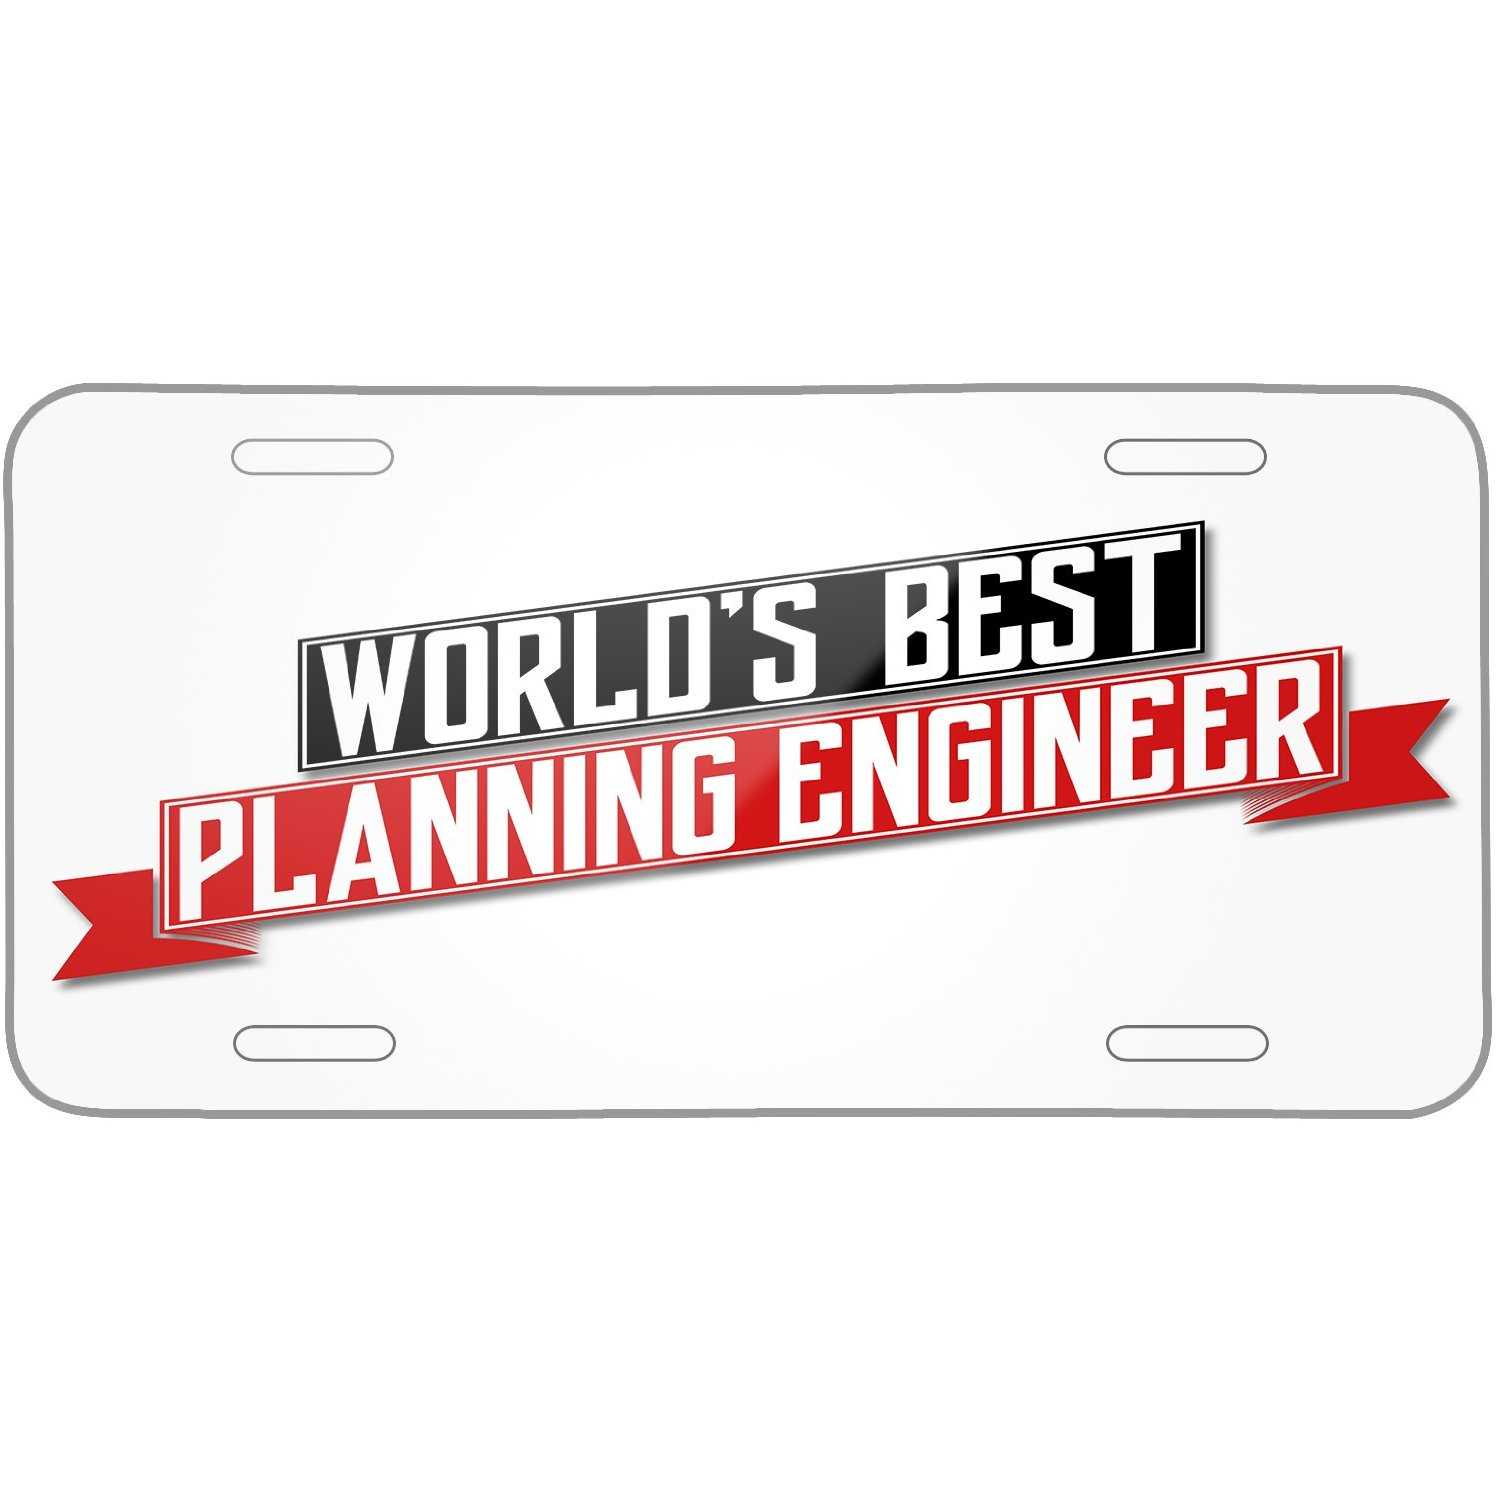 Cheap Planning Engineer, find Planning Engineer deals on